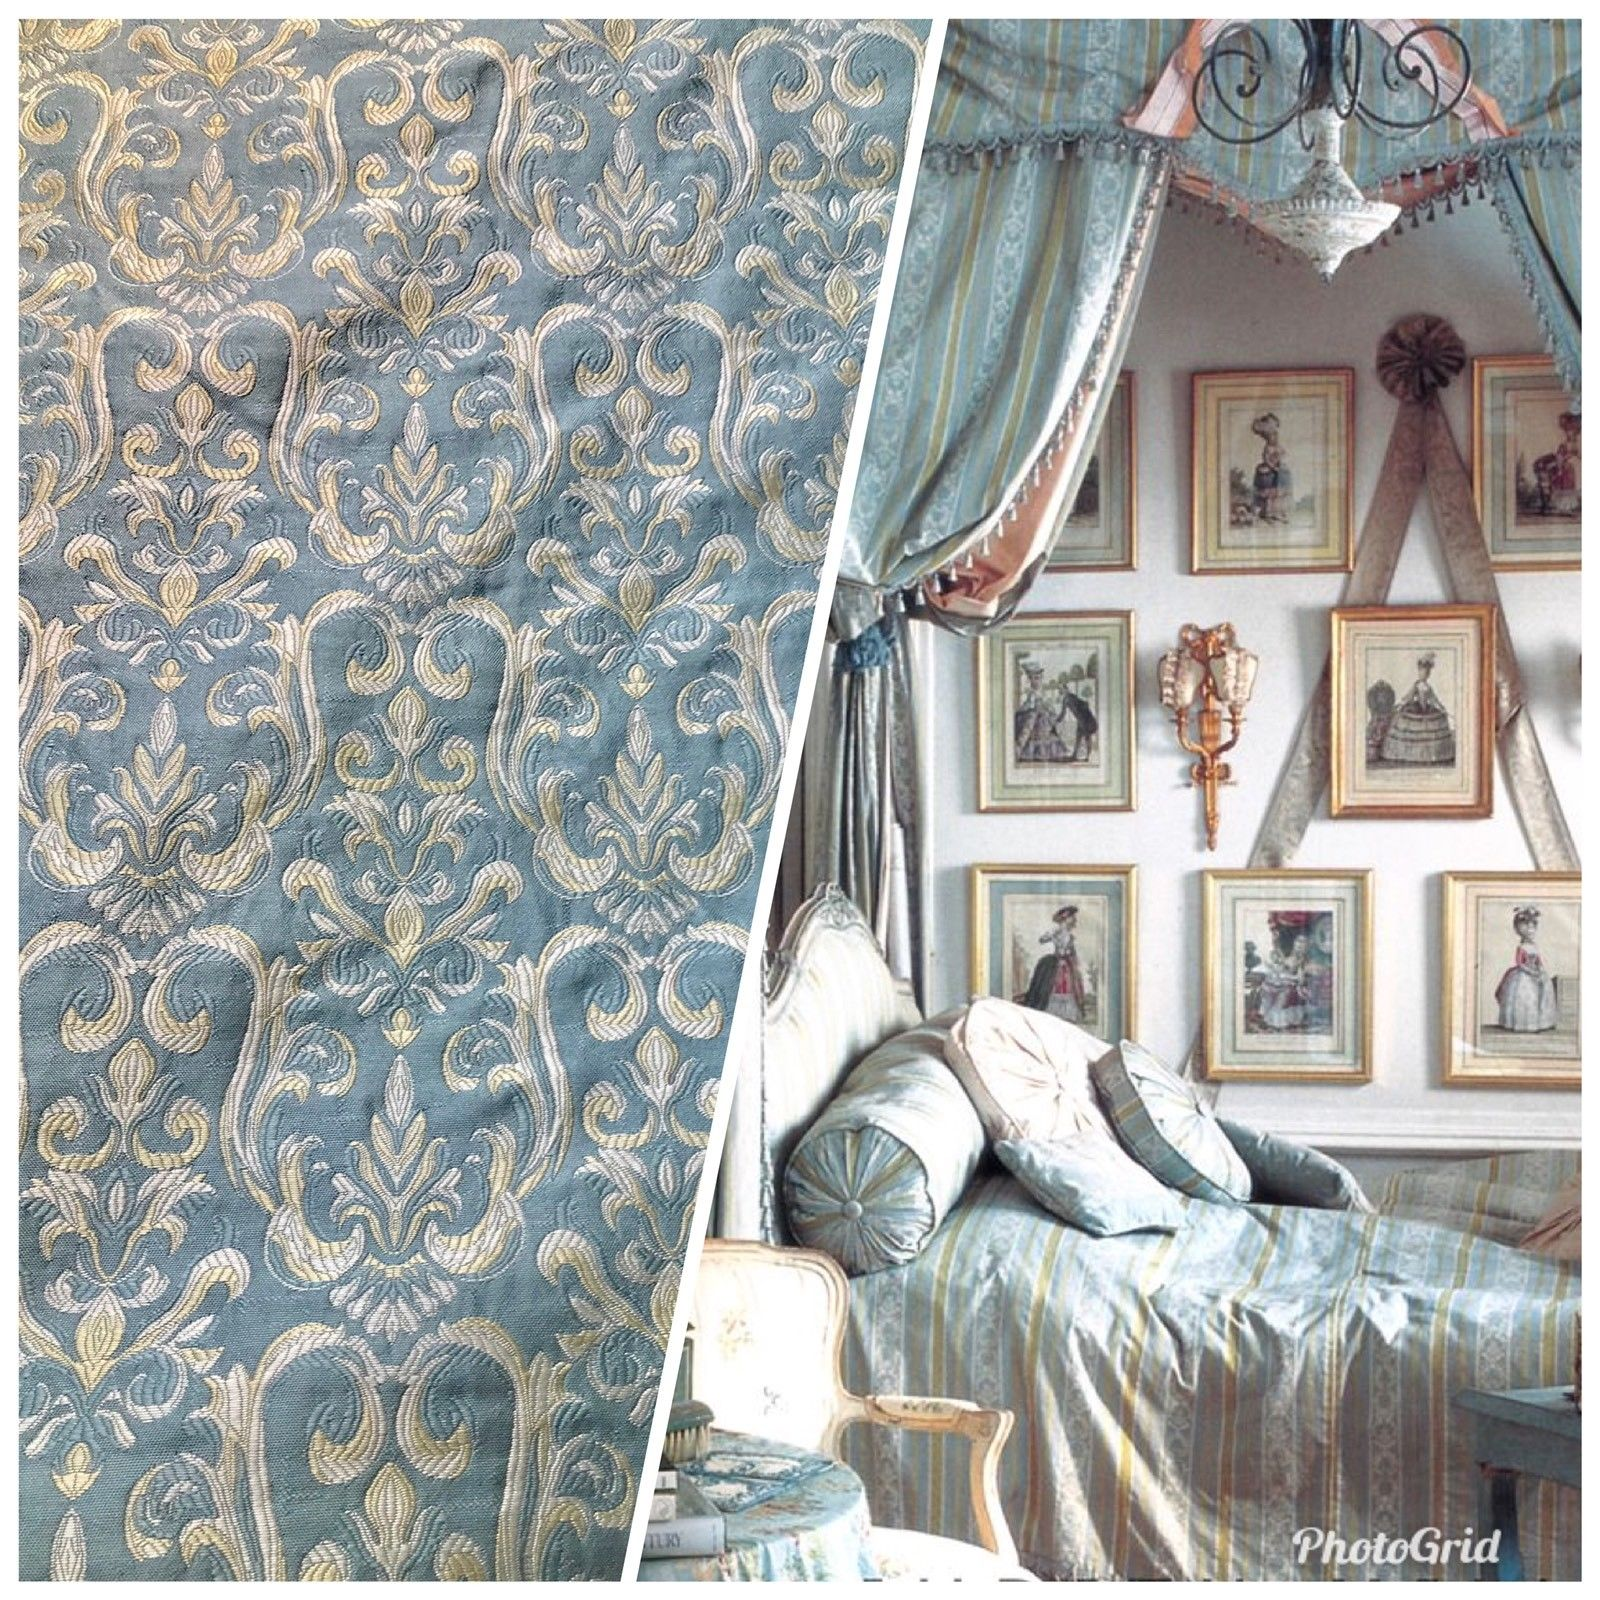 Phenomenal New Designer Damask Brocade Fabric Pale Blue Cream And Yellow Gold Upholstery Download Free Architecture Designs Scobabritishbridgeorg